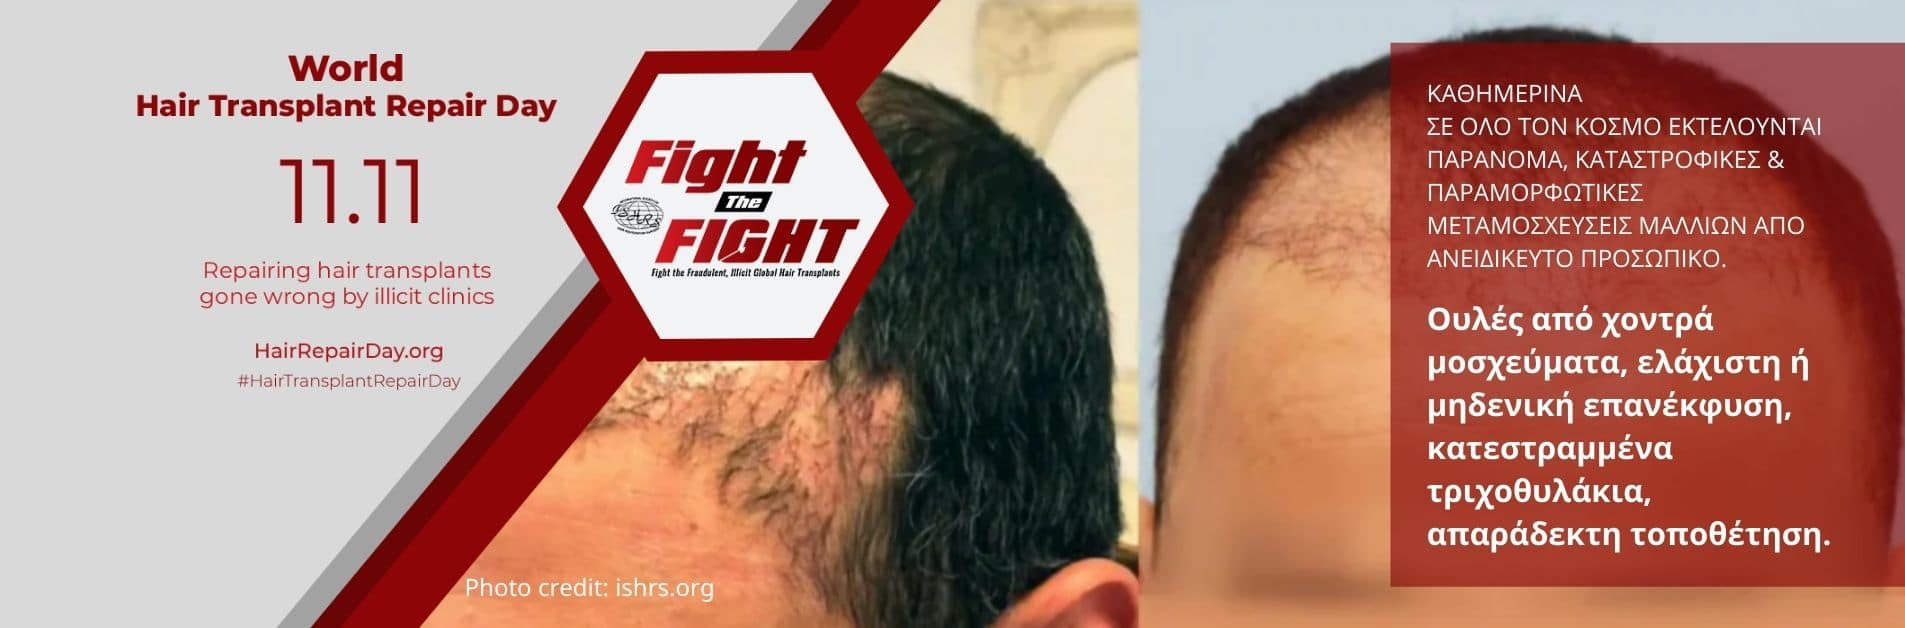 bad hair transplantation performed by a non-physician